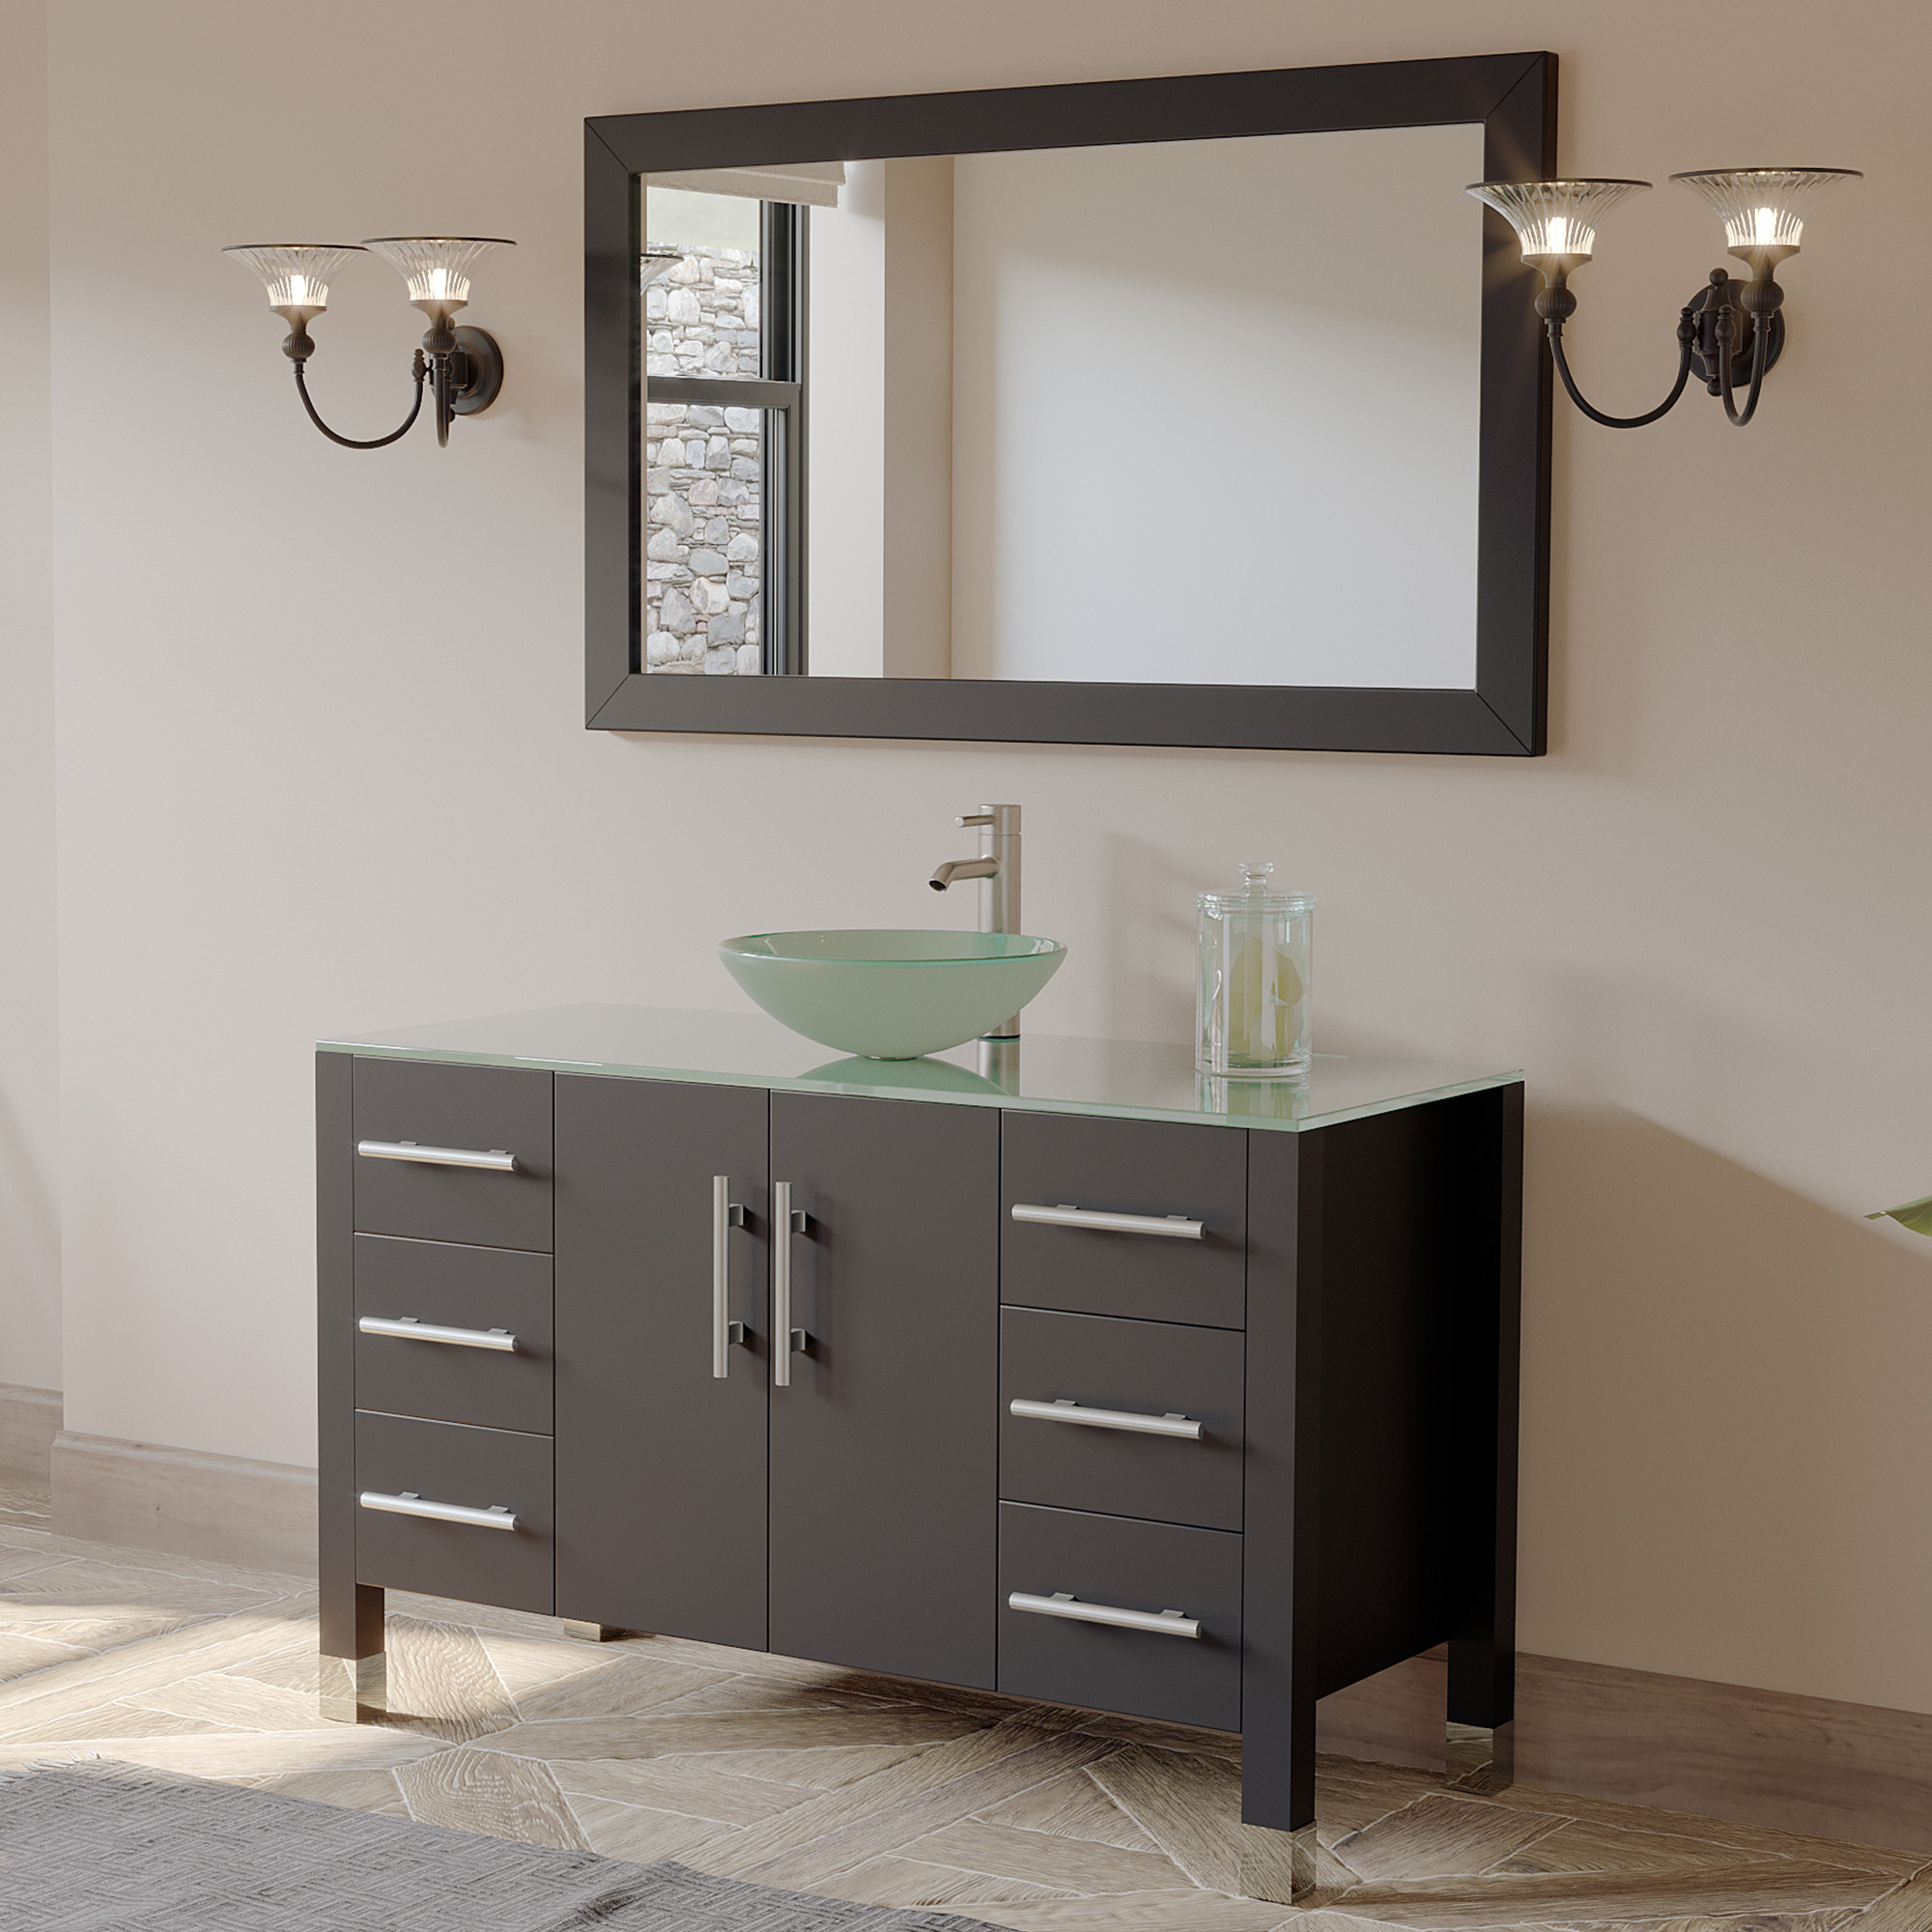 Cambridge 8116B-BN 48 Inch Solid Wood Vanity Set With Glass Vessel Sink